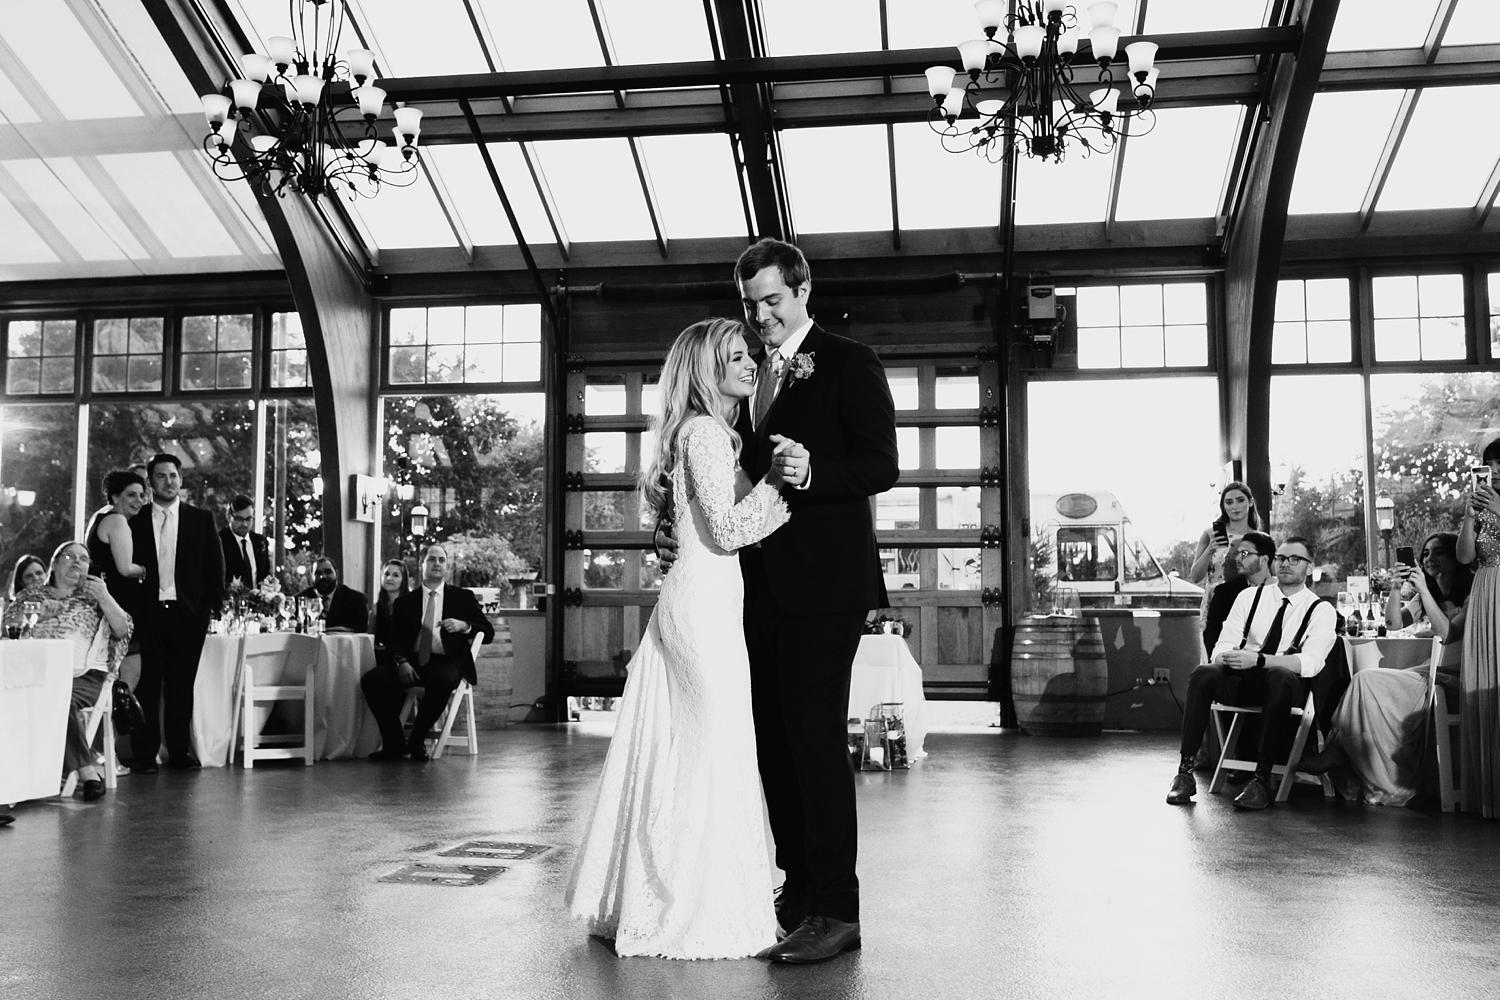 Conservatory Sussex County Fairgrounds Augusta NJ Wedding Photography Steph Massaro First Dance